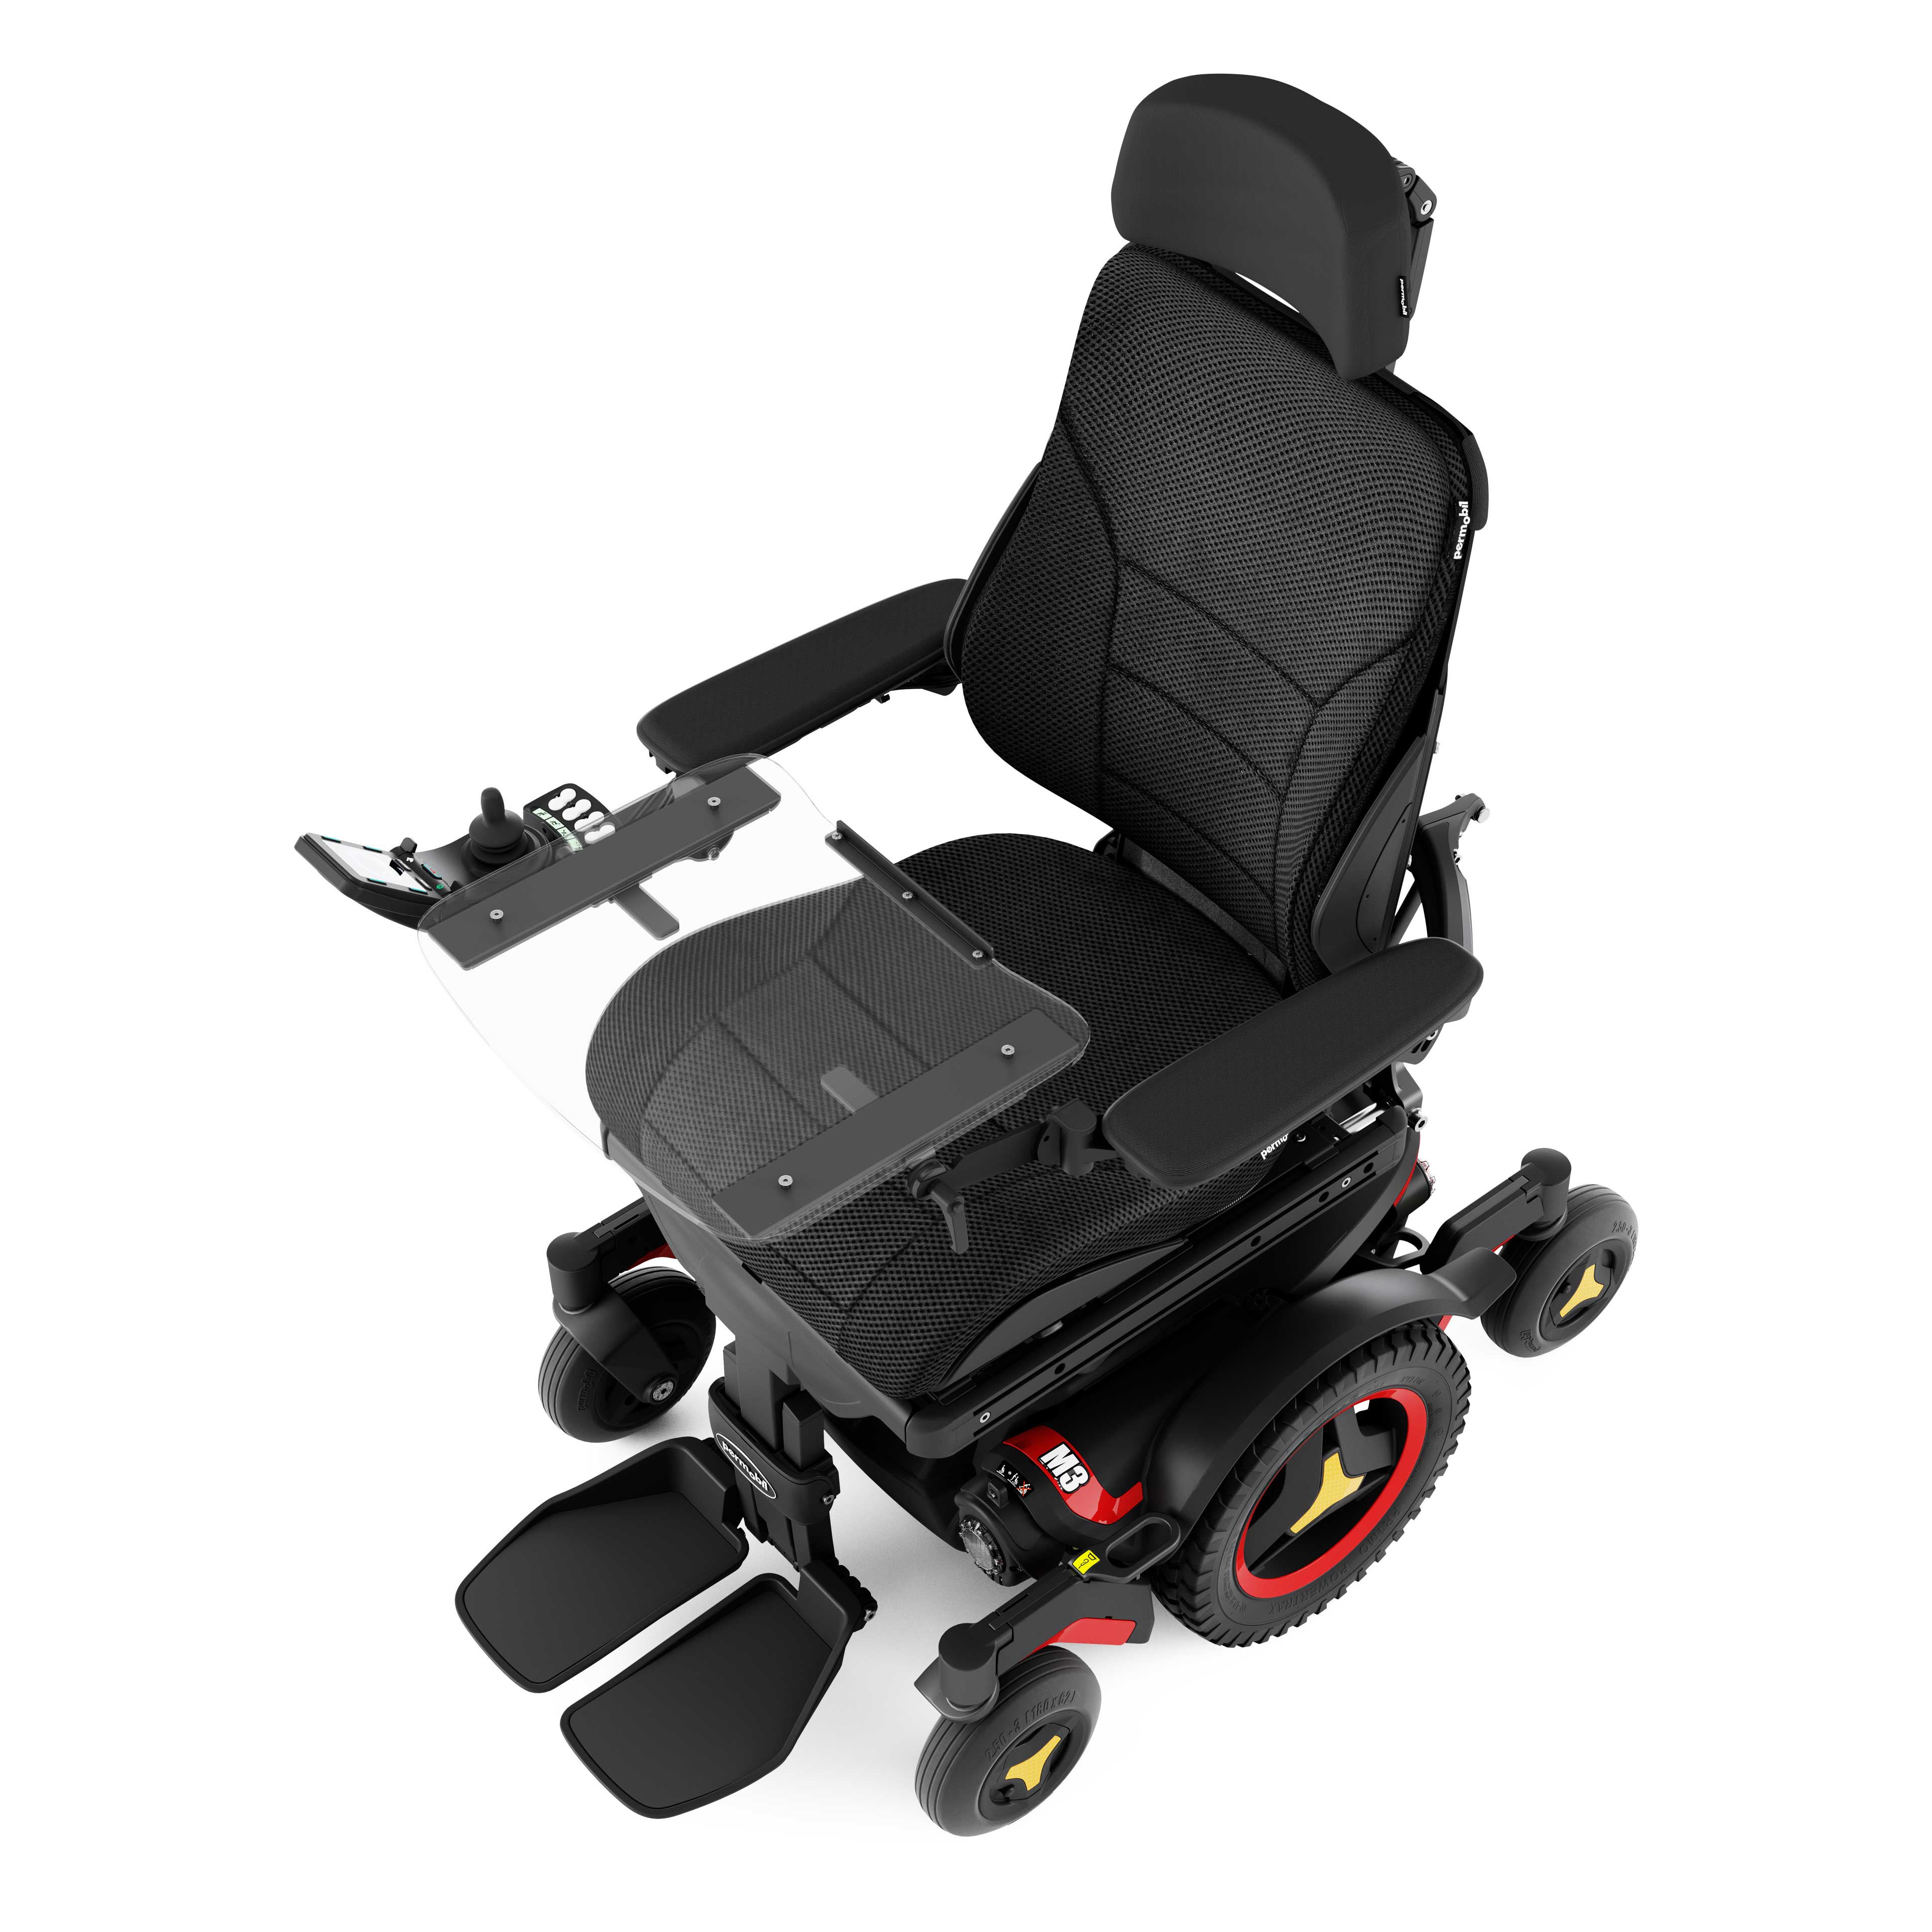 Permobil Tray of Power Wheelchair